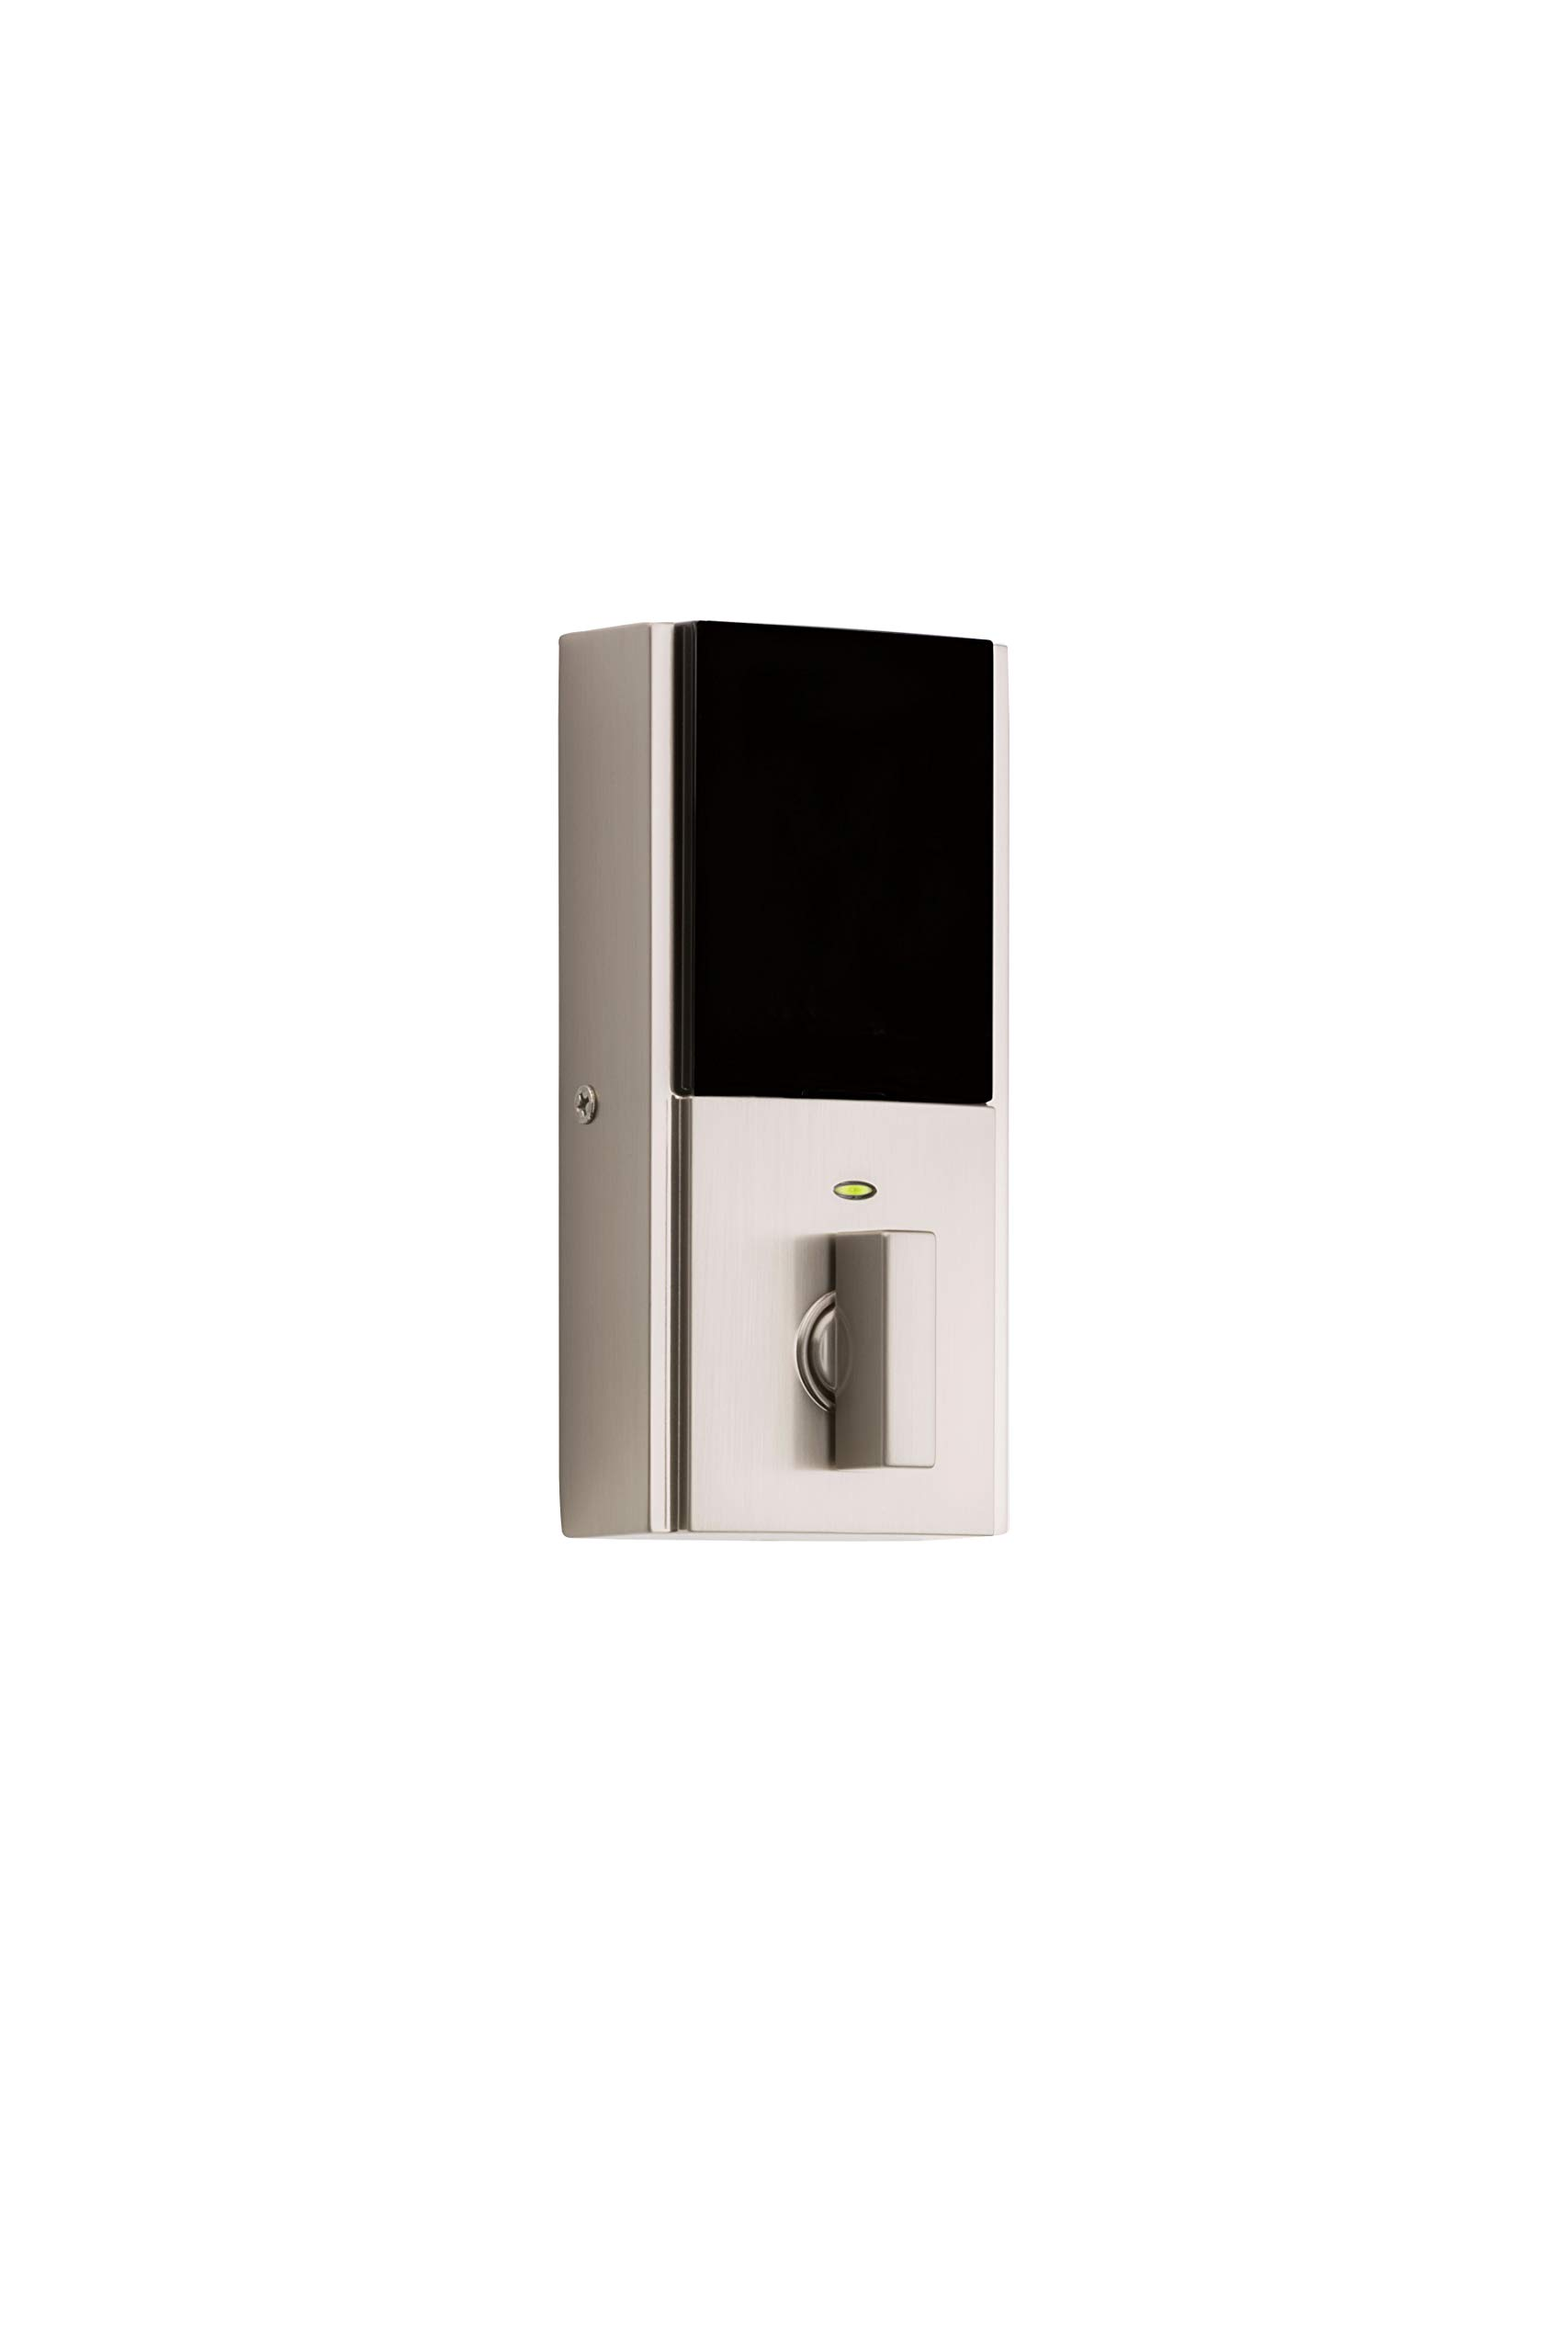 Kwikset 99250-206 Kevo 2nd Gen Contemporary Square Single Cylinder Touch-to-Open Bluetooth Deadbolt Satin Nickel by Kwikset (Image #2)